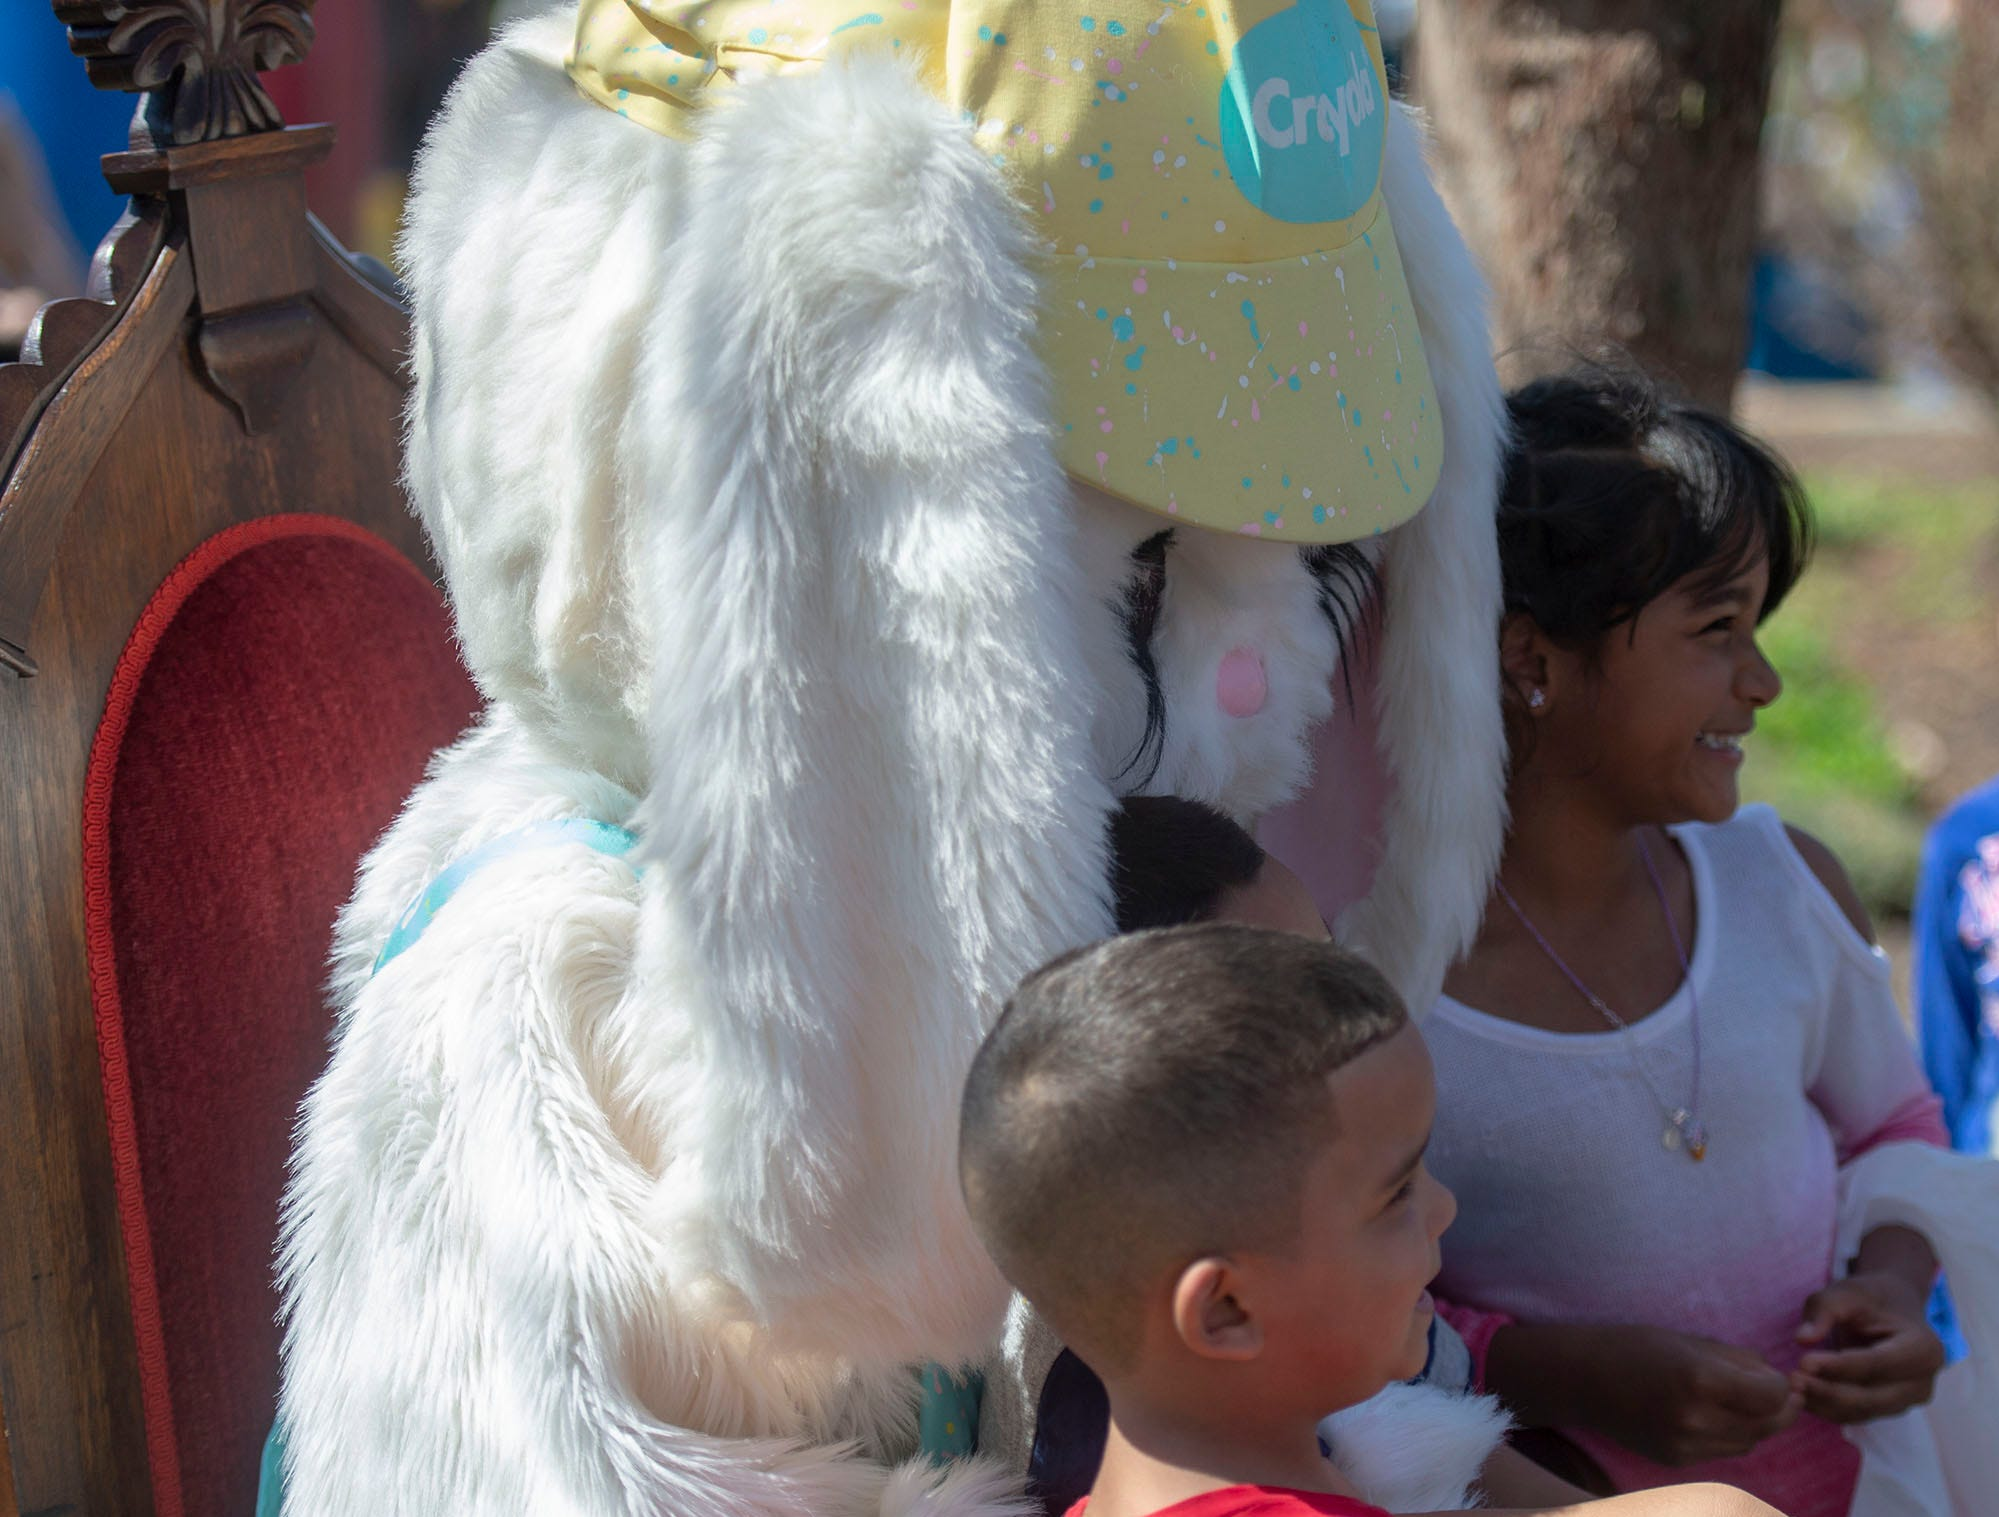 The Easter Bunny was a popular attraction at the City of York's Easter Egg Hunt Saturday, April 13, 2019 at Kiwanis Lake.